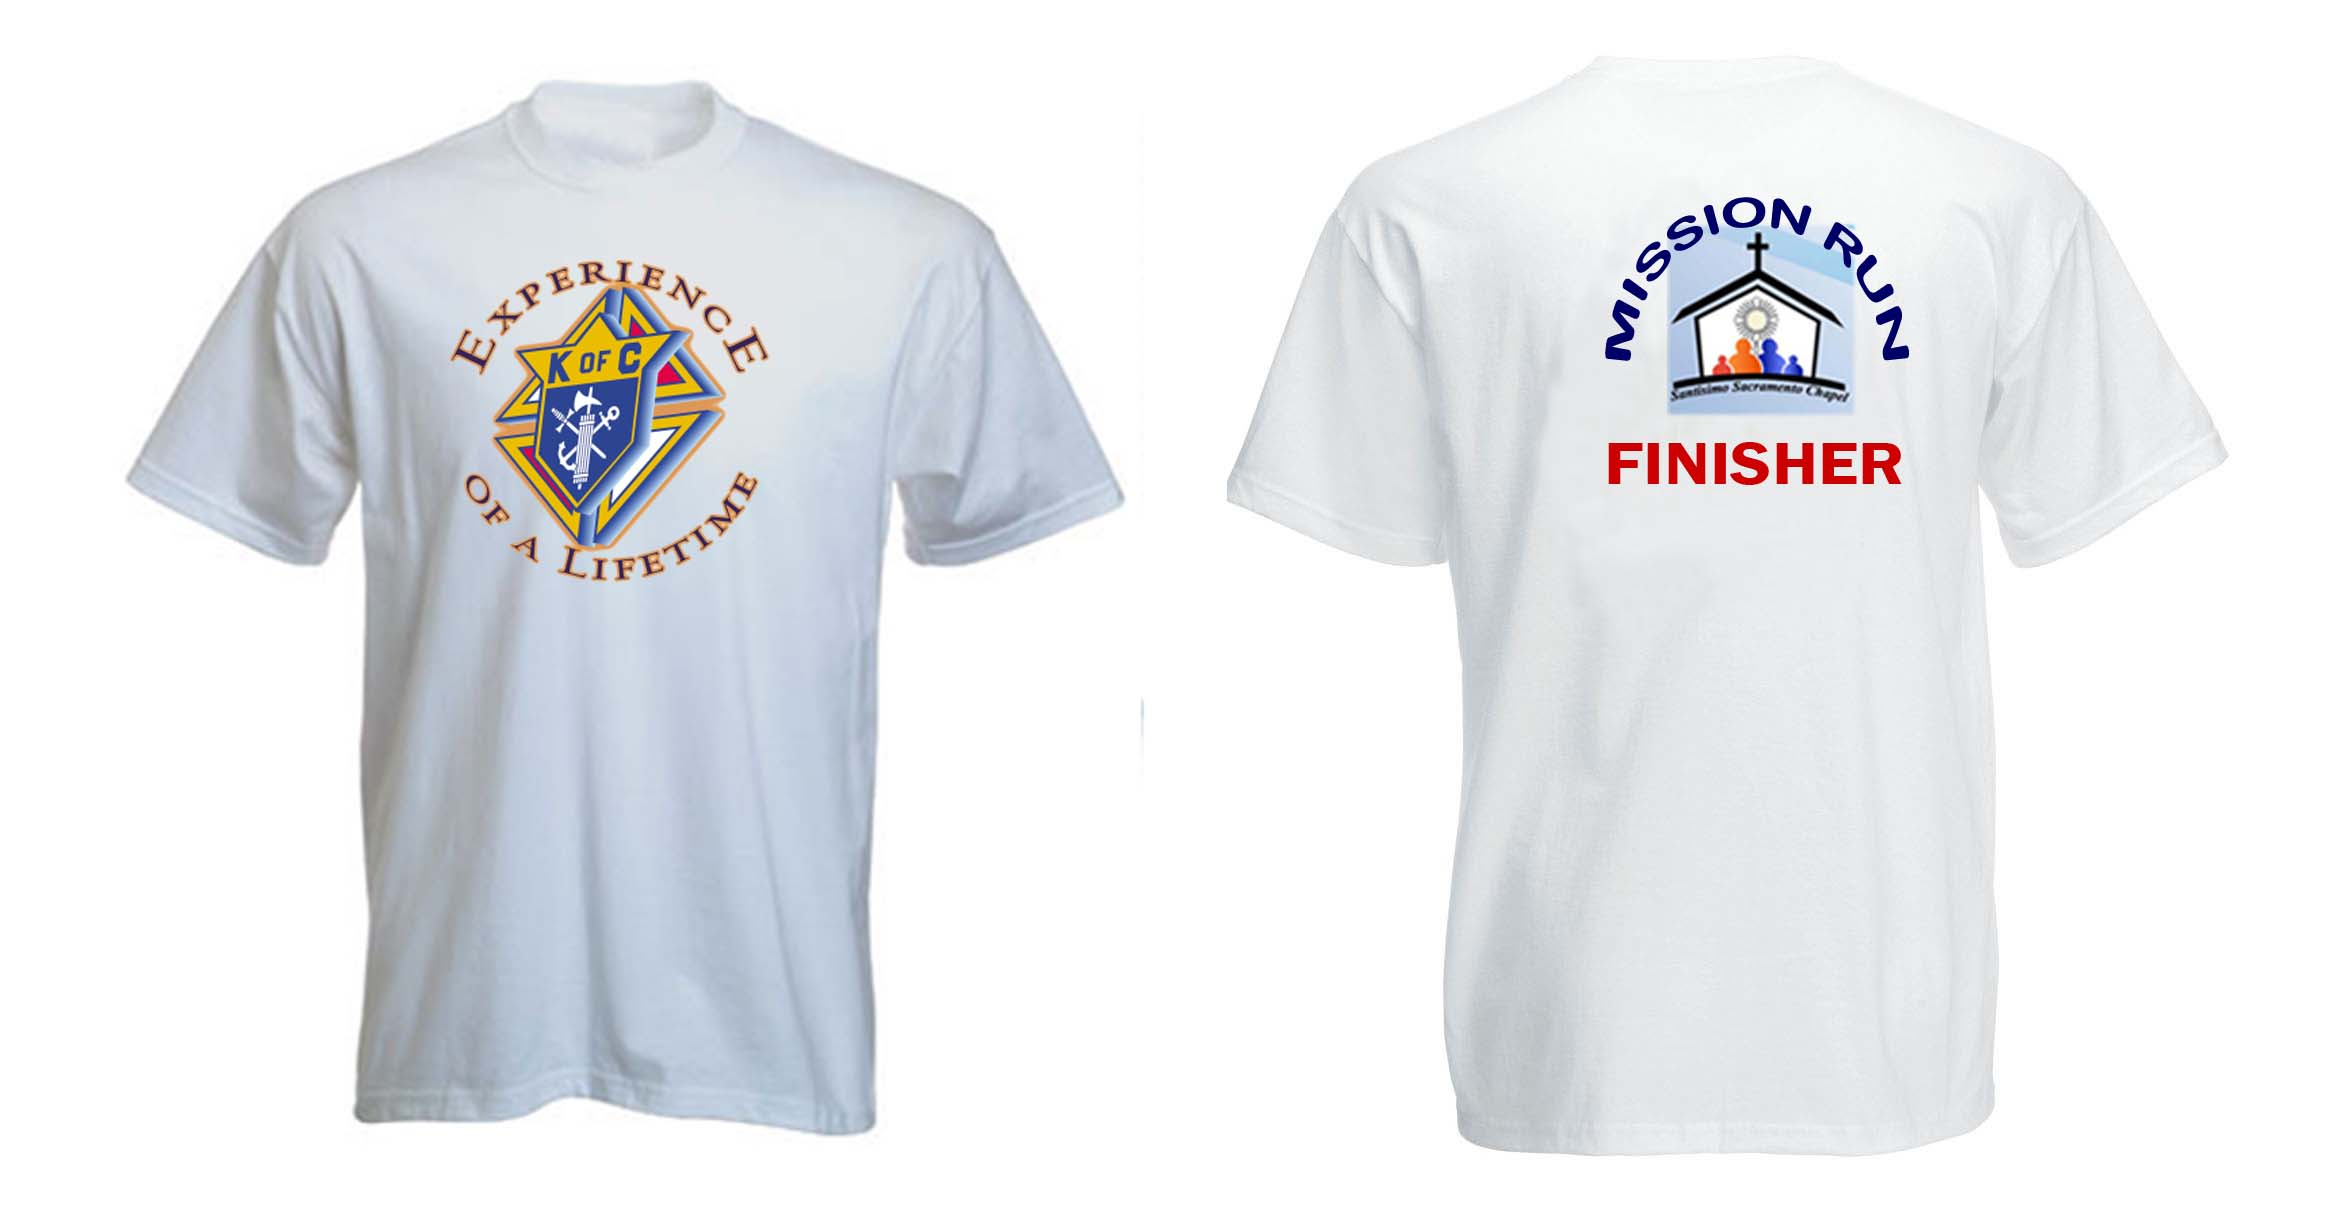 mission-run-2013-finisher-shirt-design